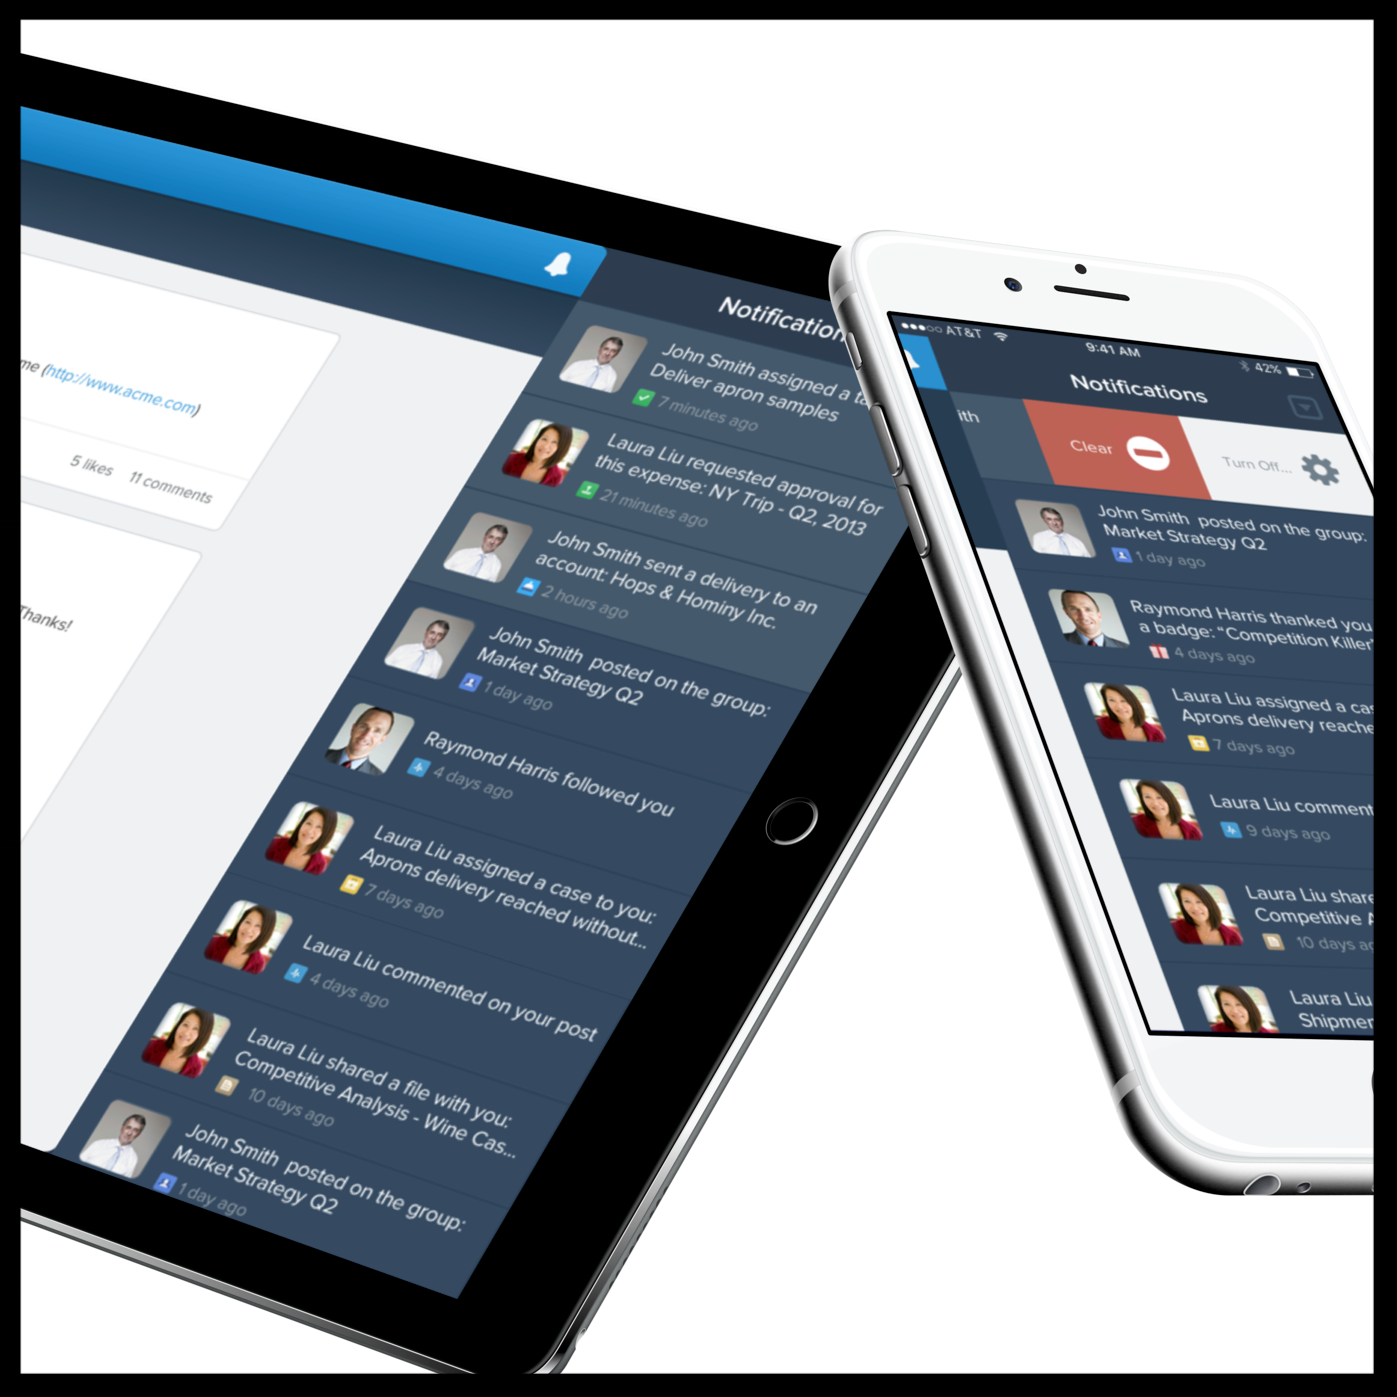 Salesforce 1 - Before Salesforce1, we had 4 native mobile apps and 1 mobile web app for sales teams. Getting things done on the go was hard and in-efficient with key collaboration and workflows spread across multiple apps. This led to poor mobile adoption and a disjointed experience.Our hypothesis was that by unifying, modernizing and mobilizing key sales workflows under one native mobile app, the sales teams would become much more efficient at getting work done on the go.Salesforce1 was a design led project from the get go with CEO support. This project started with a small group of designers and user researchers co-locating into the same space and going through rapid cycles of problem framing, sketching, prototyping & validating.